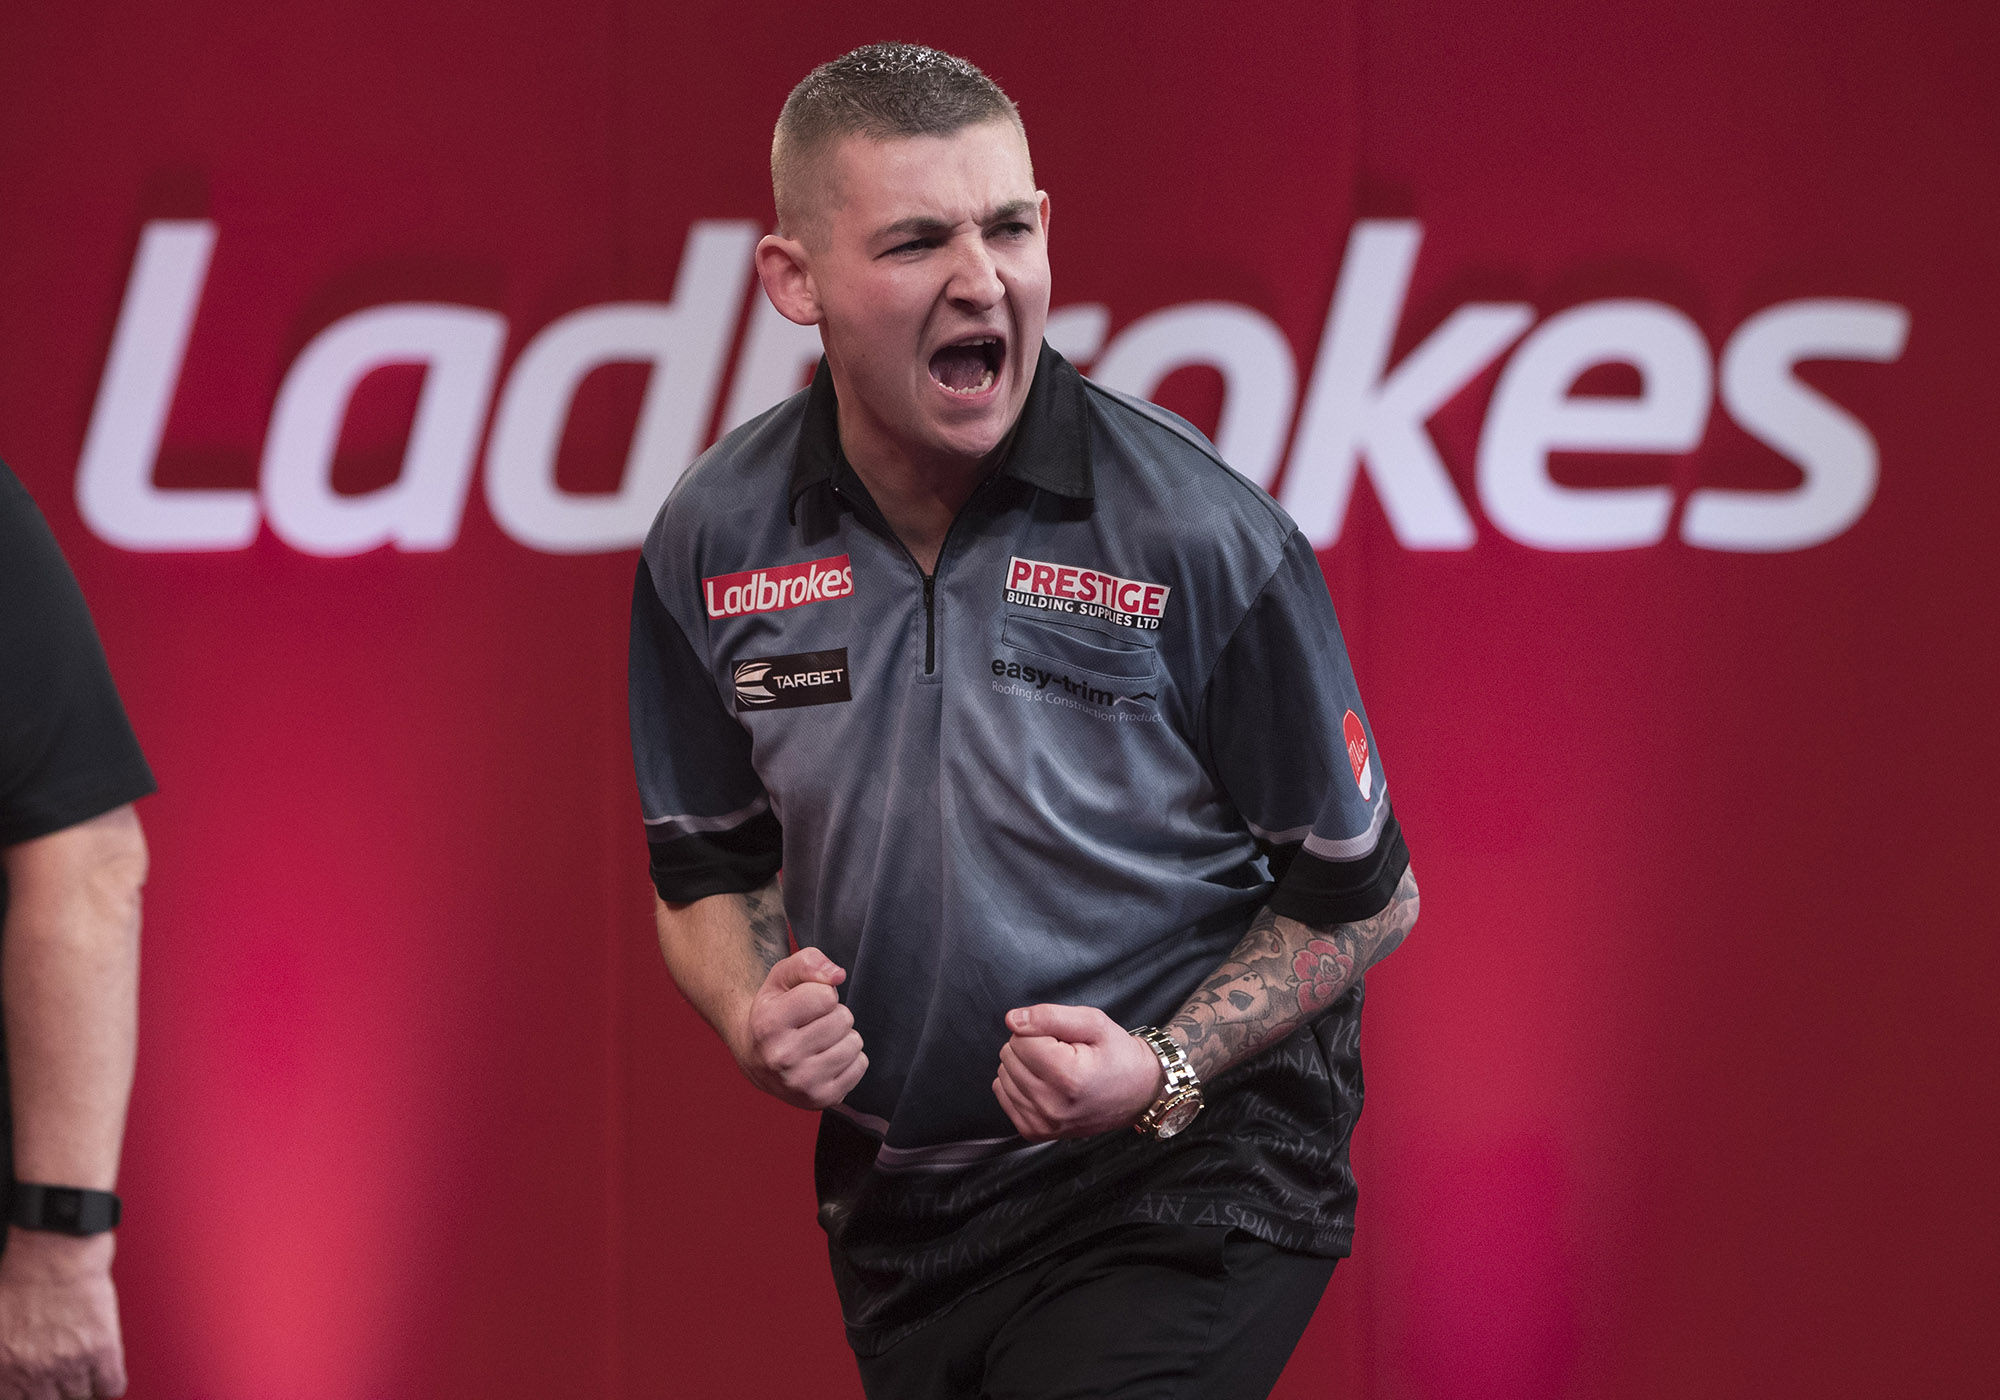 Nathan Aspinall makes strides while Raymond van Barneveld slips out of top 32 in PDC Order of Merit after UK Open